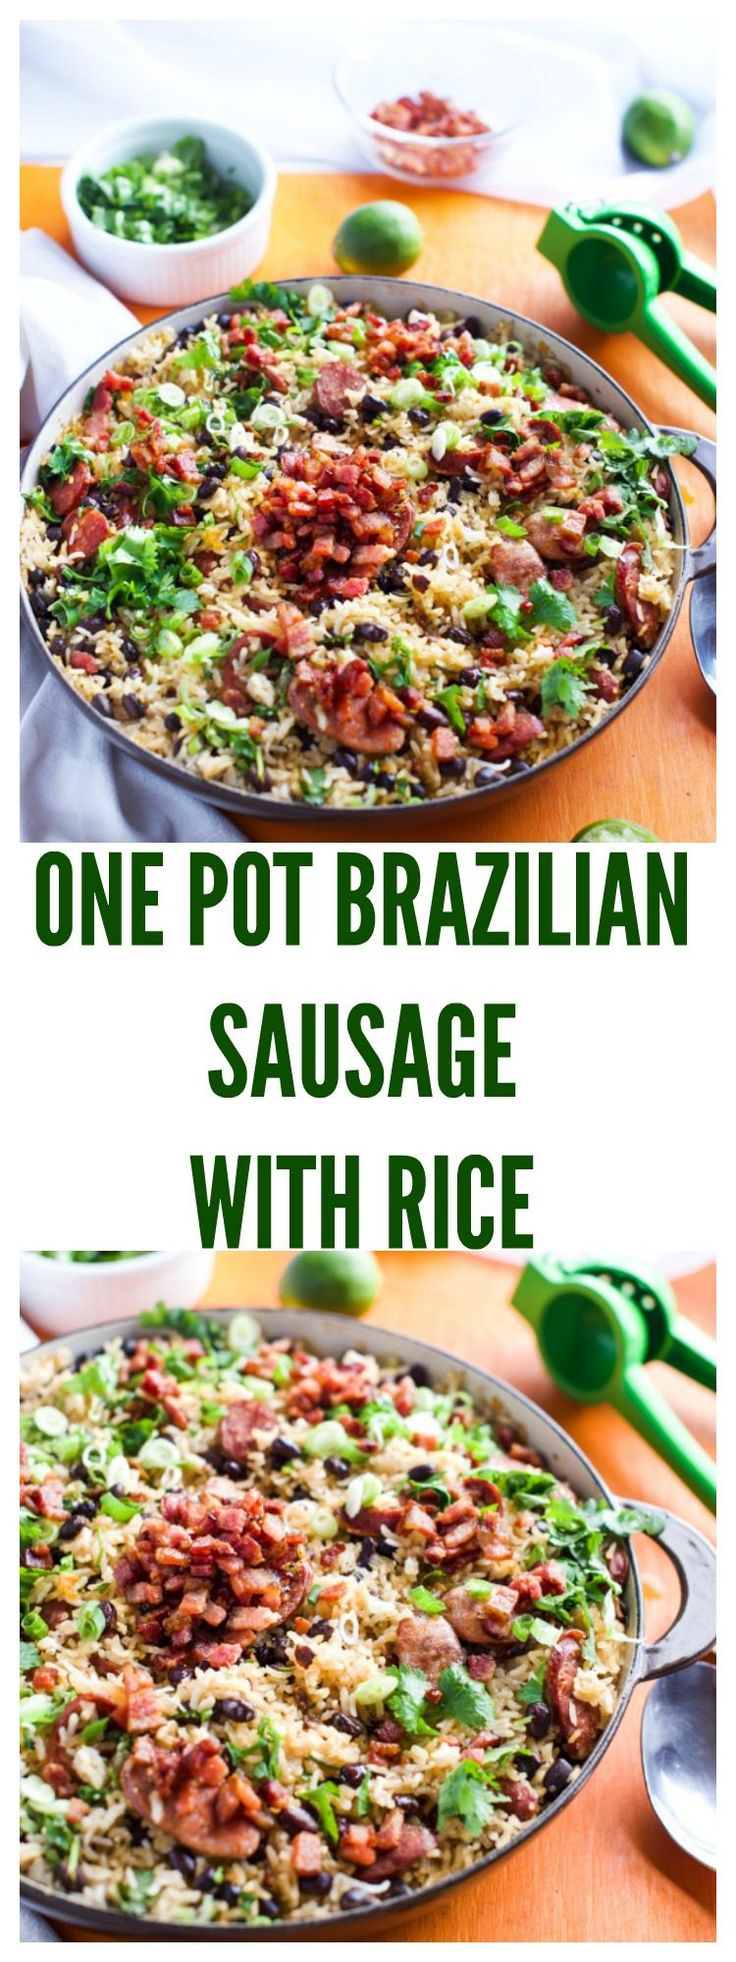 ONE POT BRAZILIAN SAUSAGE WITH RICE